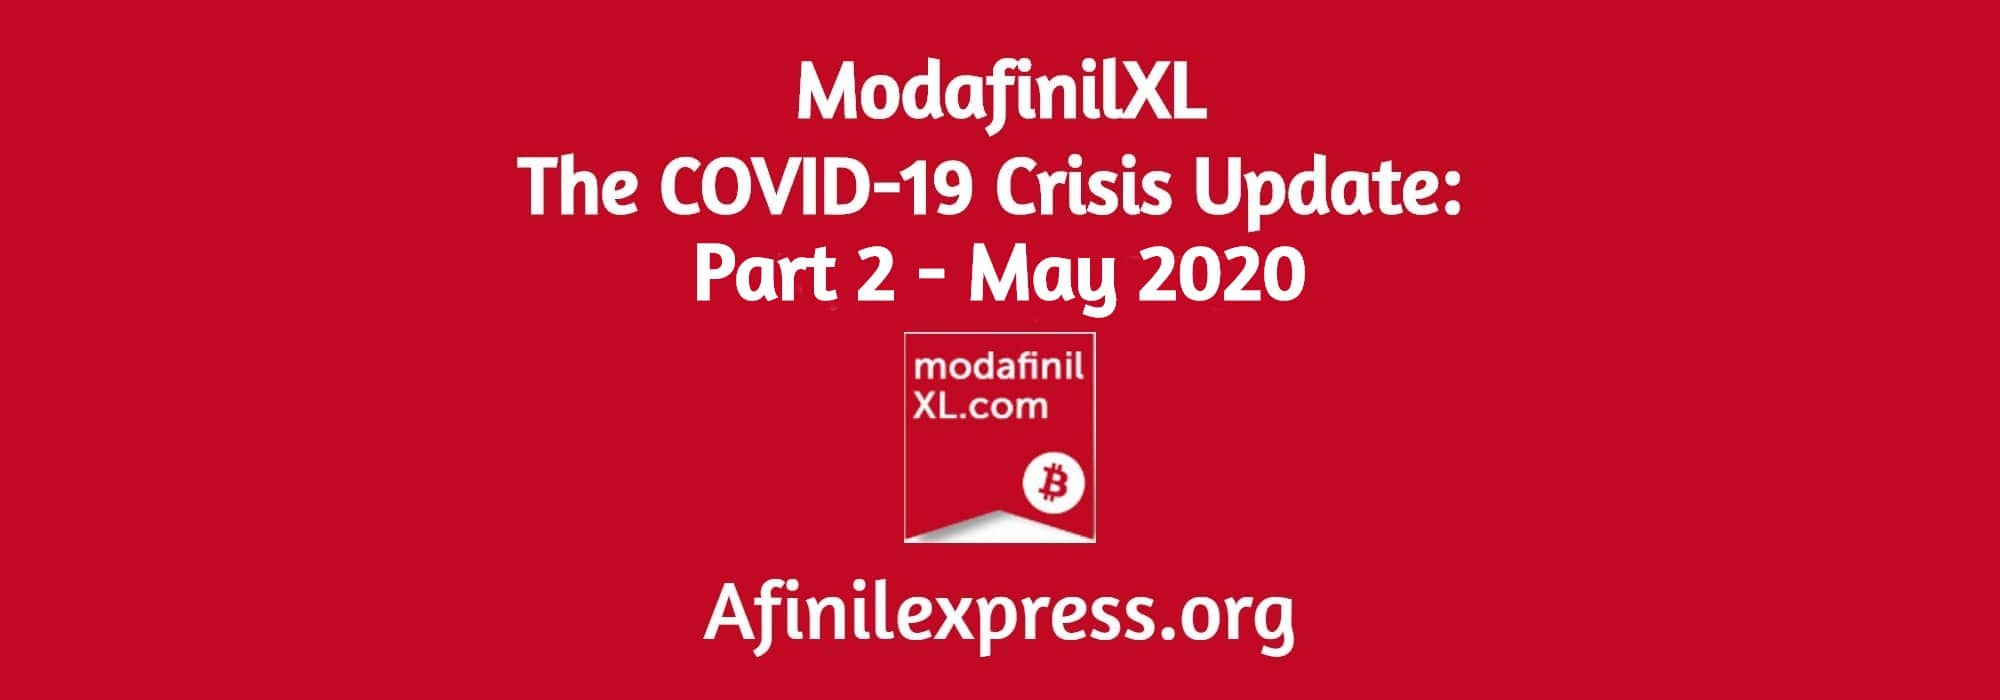 The-COVID-19-Crisis-Update_-Part-2